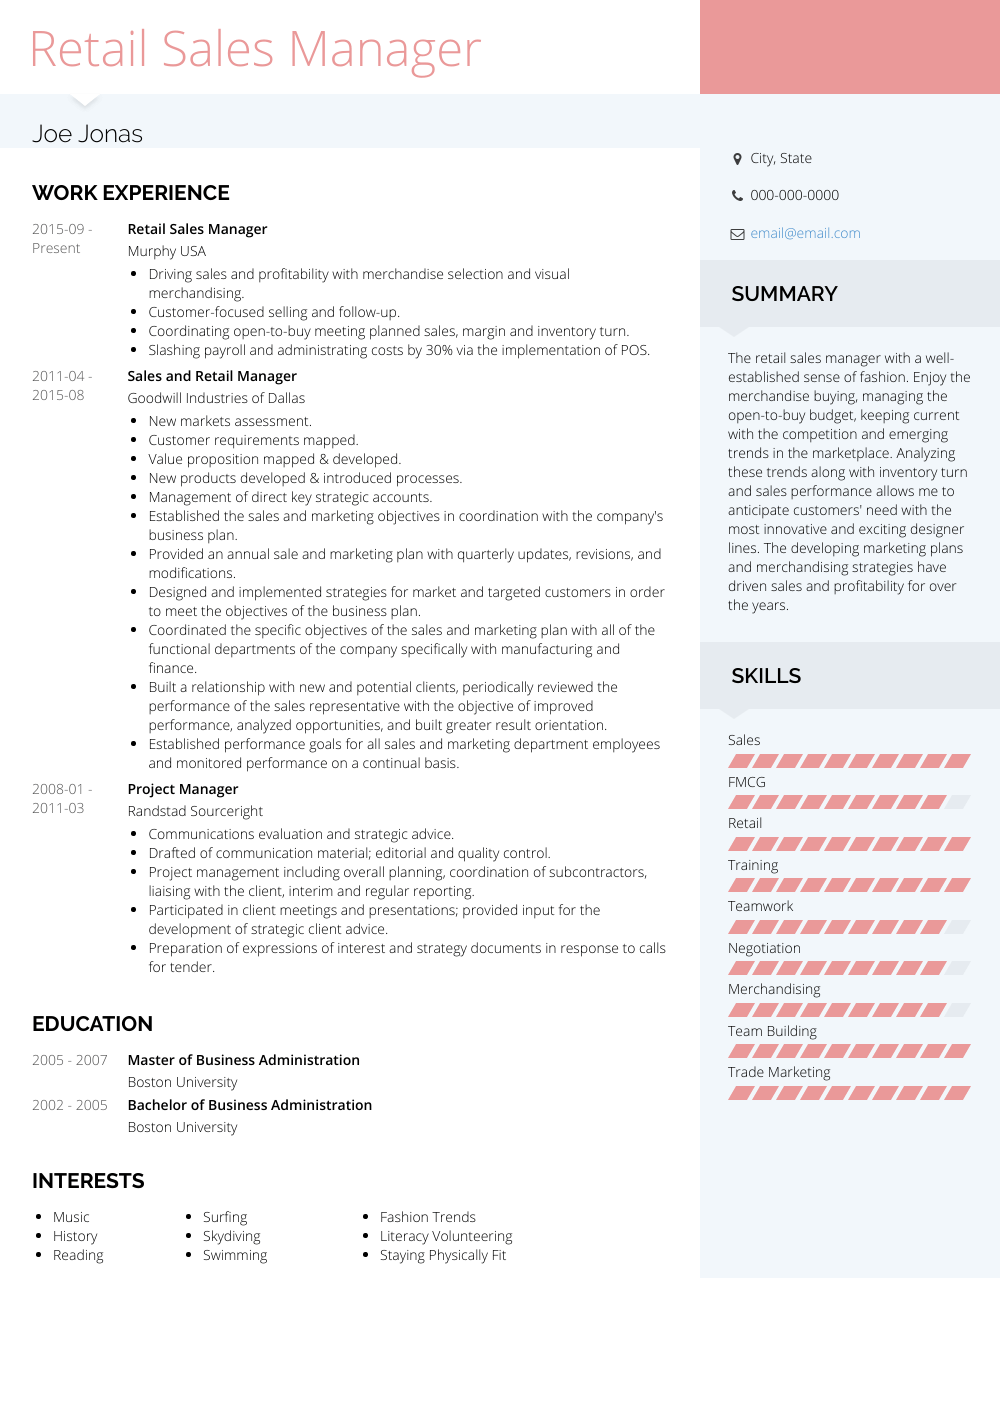 Retail Sales Manager Resume Sample and Template